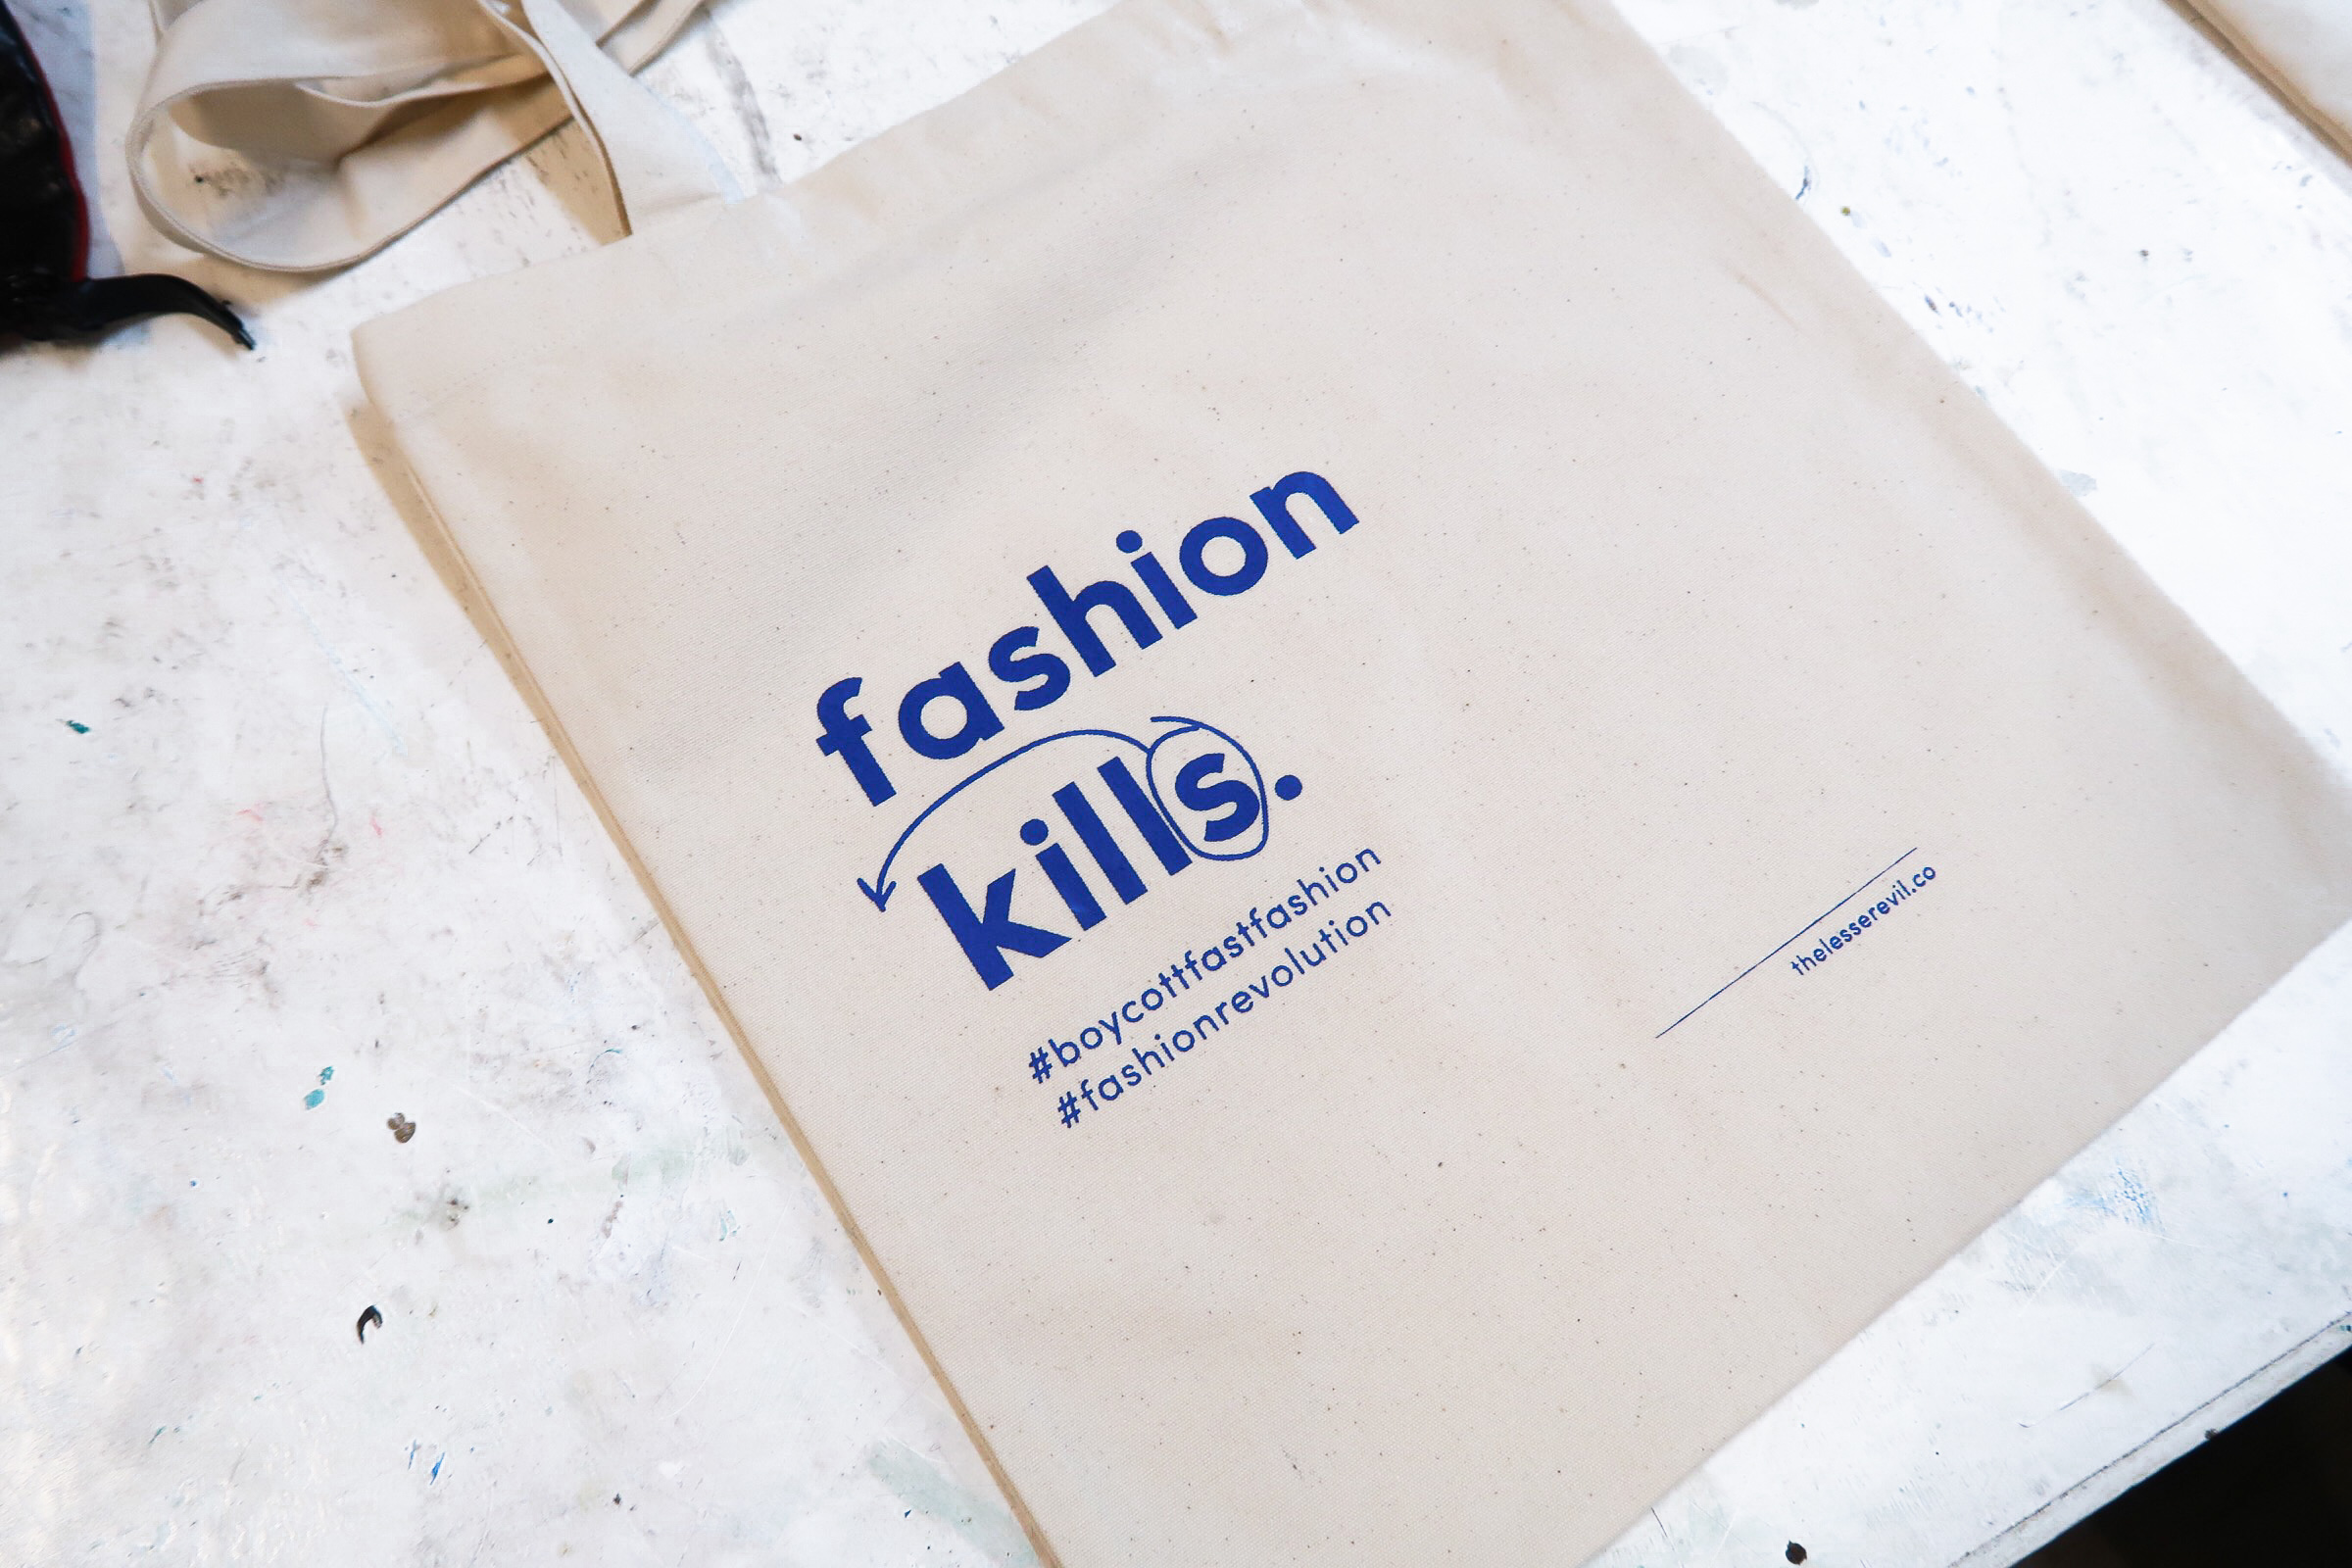 quit fast fashion - Let's spread the message!